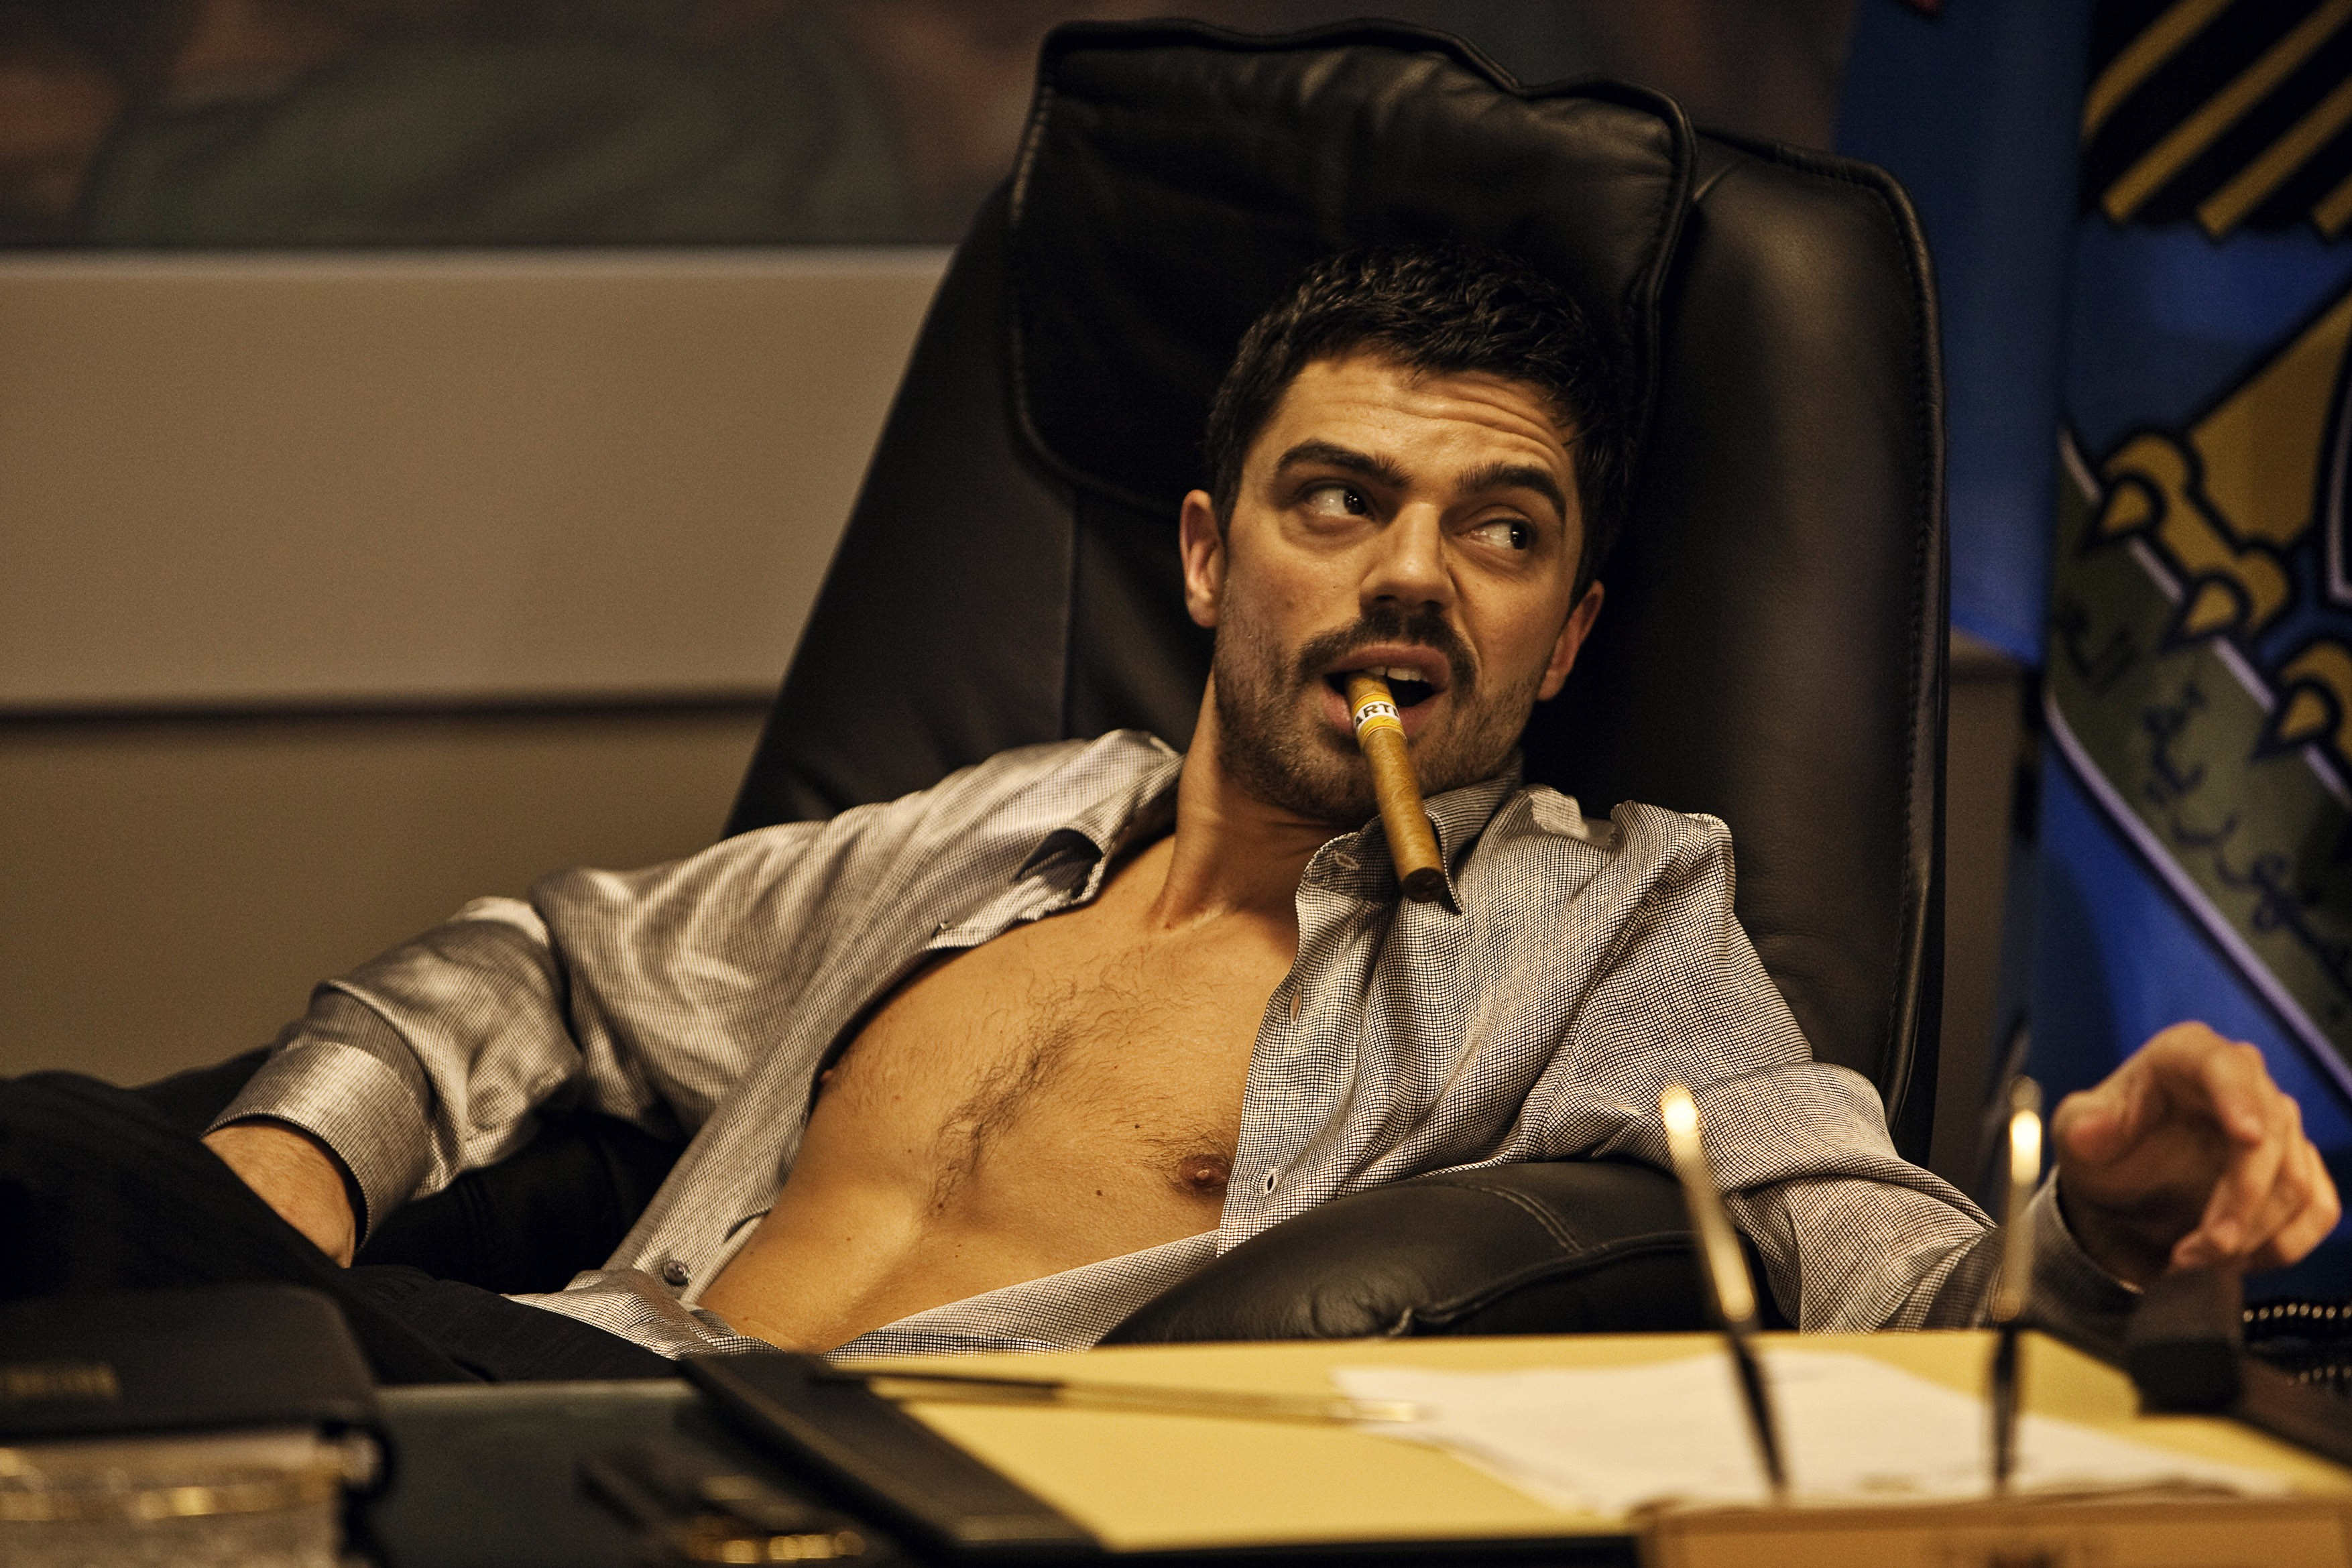 Wallpaper: Dominic Cooper in Devil's Double